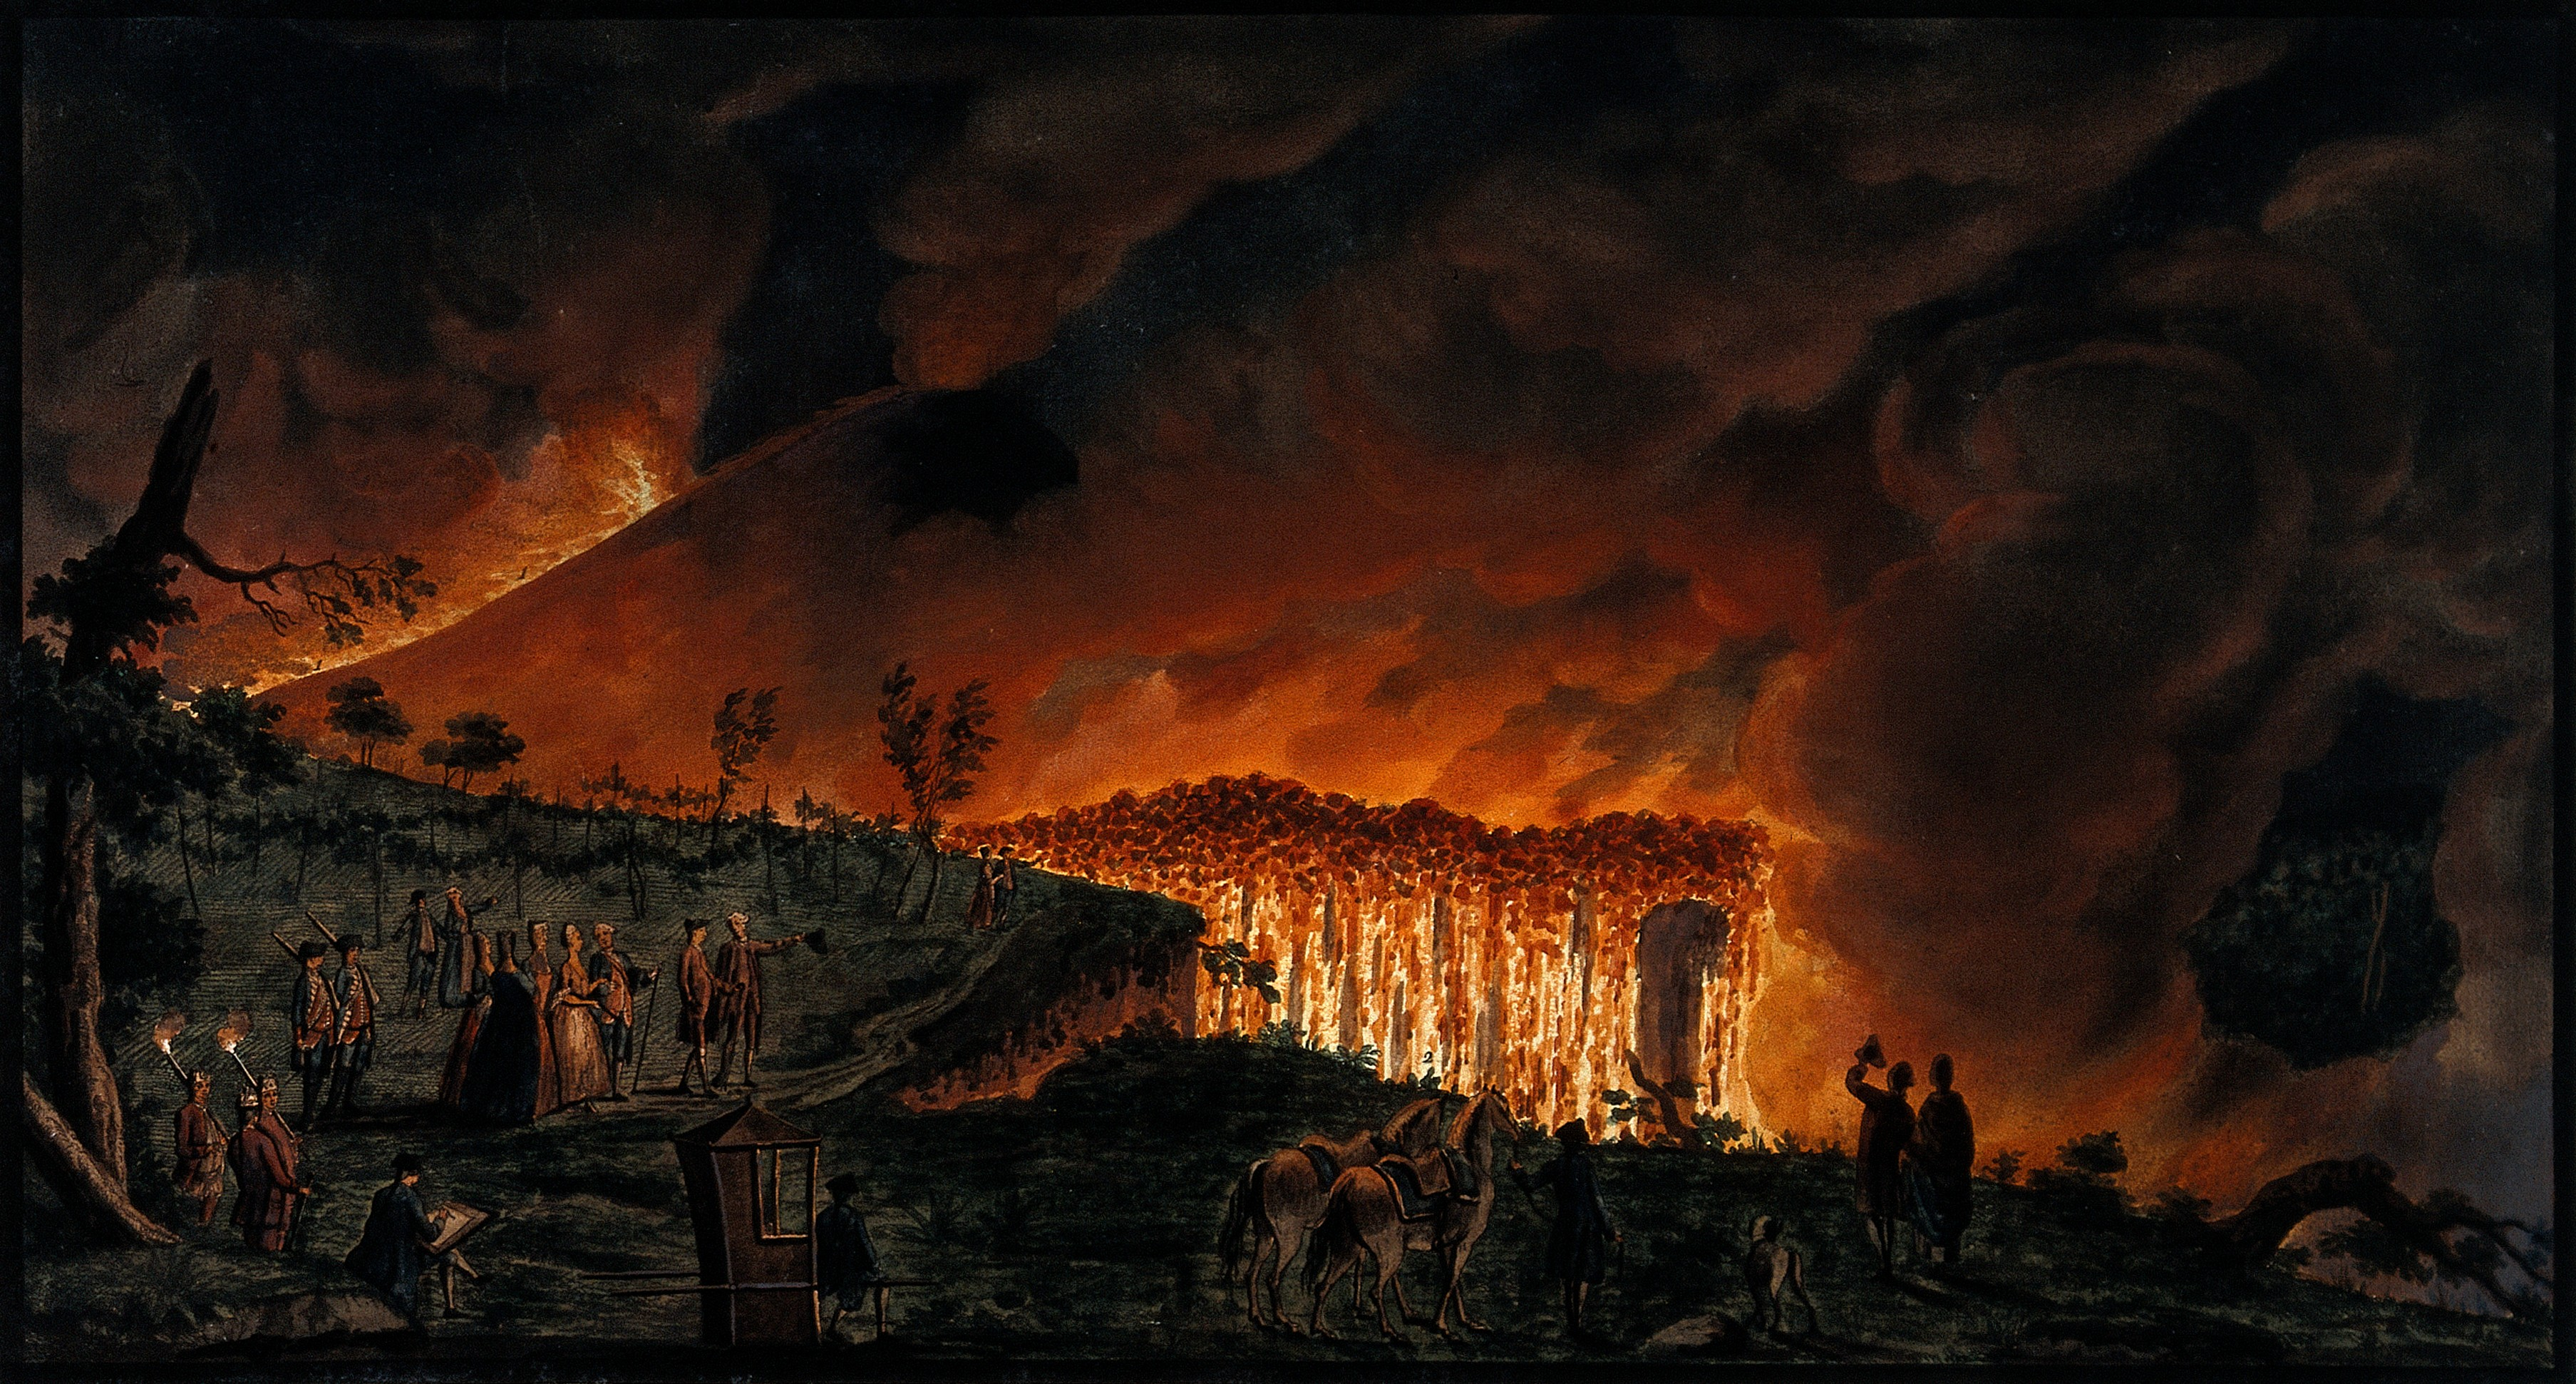 essay on eruption of pompeii You think you know there is to know about the pompeii disaster it would be hard to find someone who has never heard of pompeii, the glorious ancient roman city that got destroyed and buried under ash after the volcano mount vesuvius erupted in 79 ad.